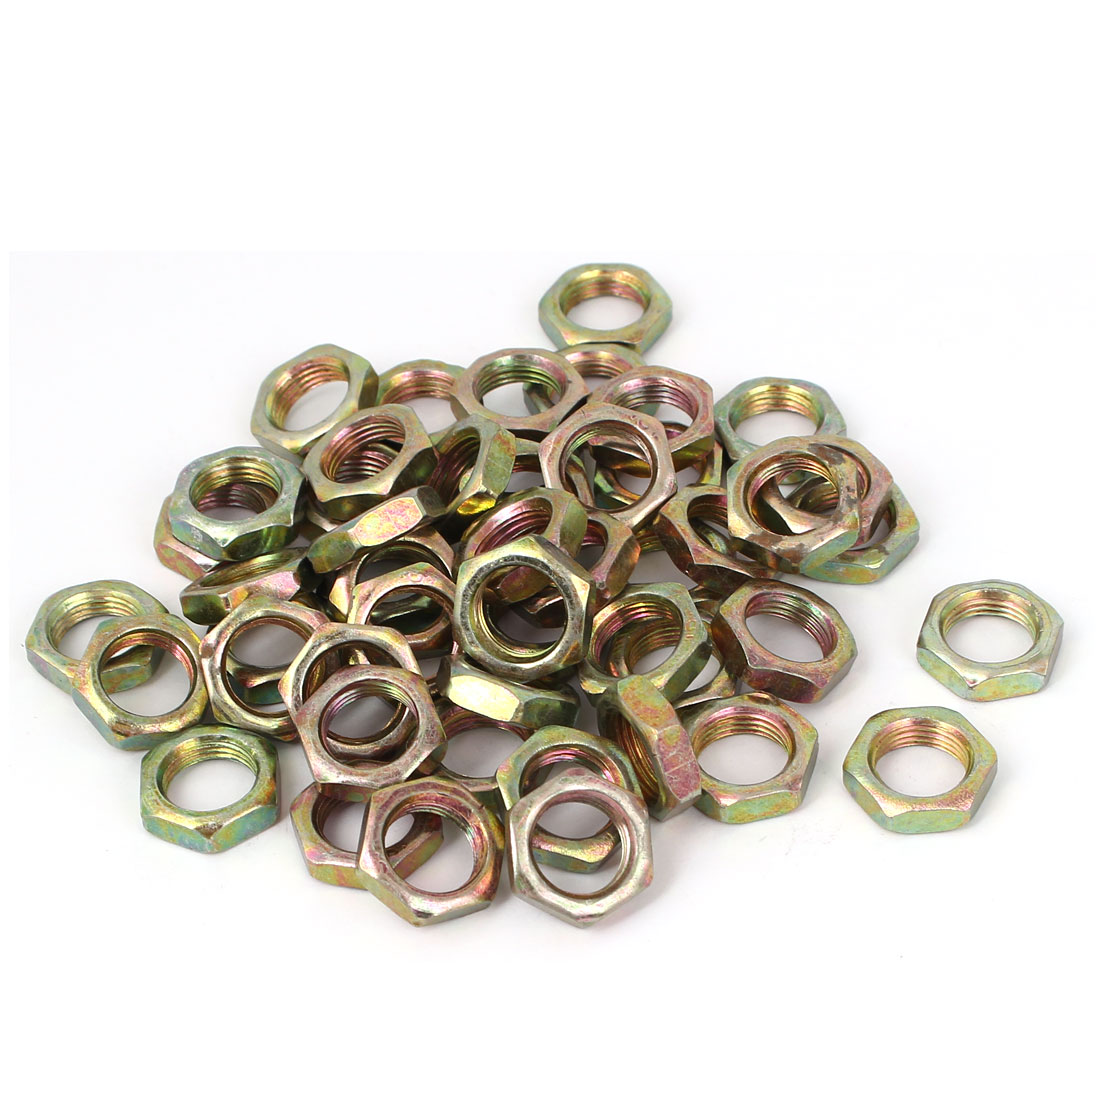 M12x5mm Carbon Steel Hex Nuts Fastener 50pcs for Screws Bolts